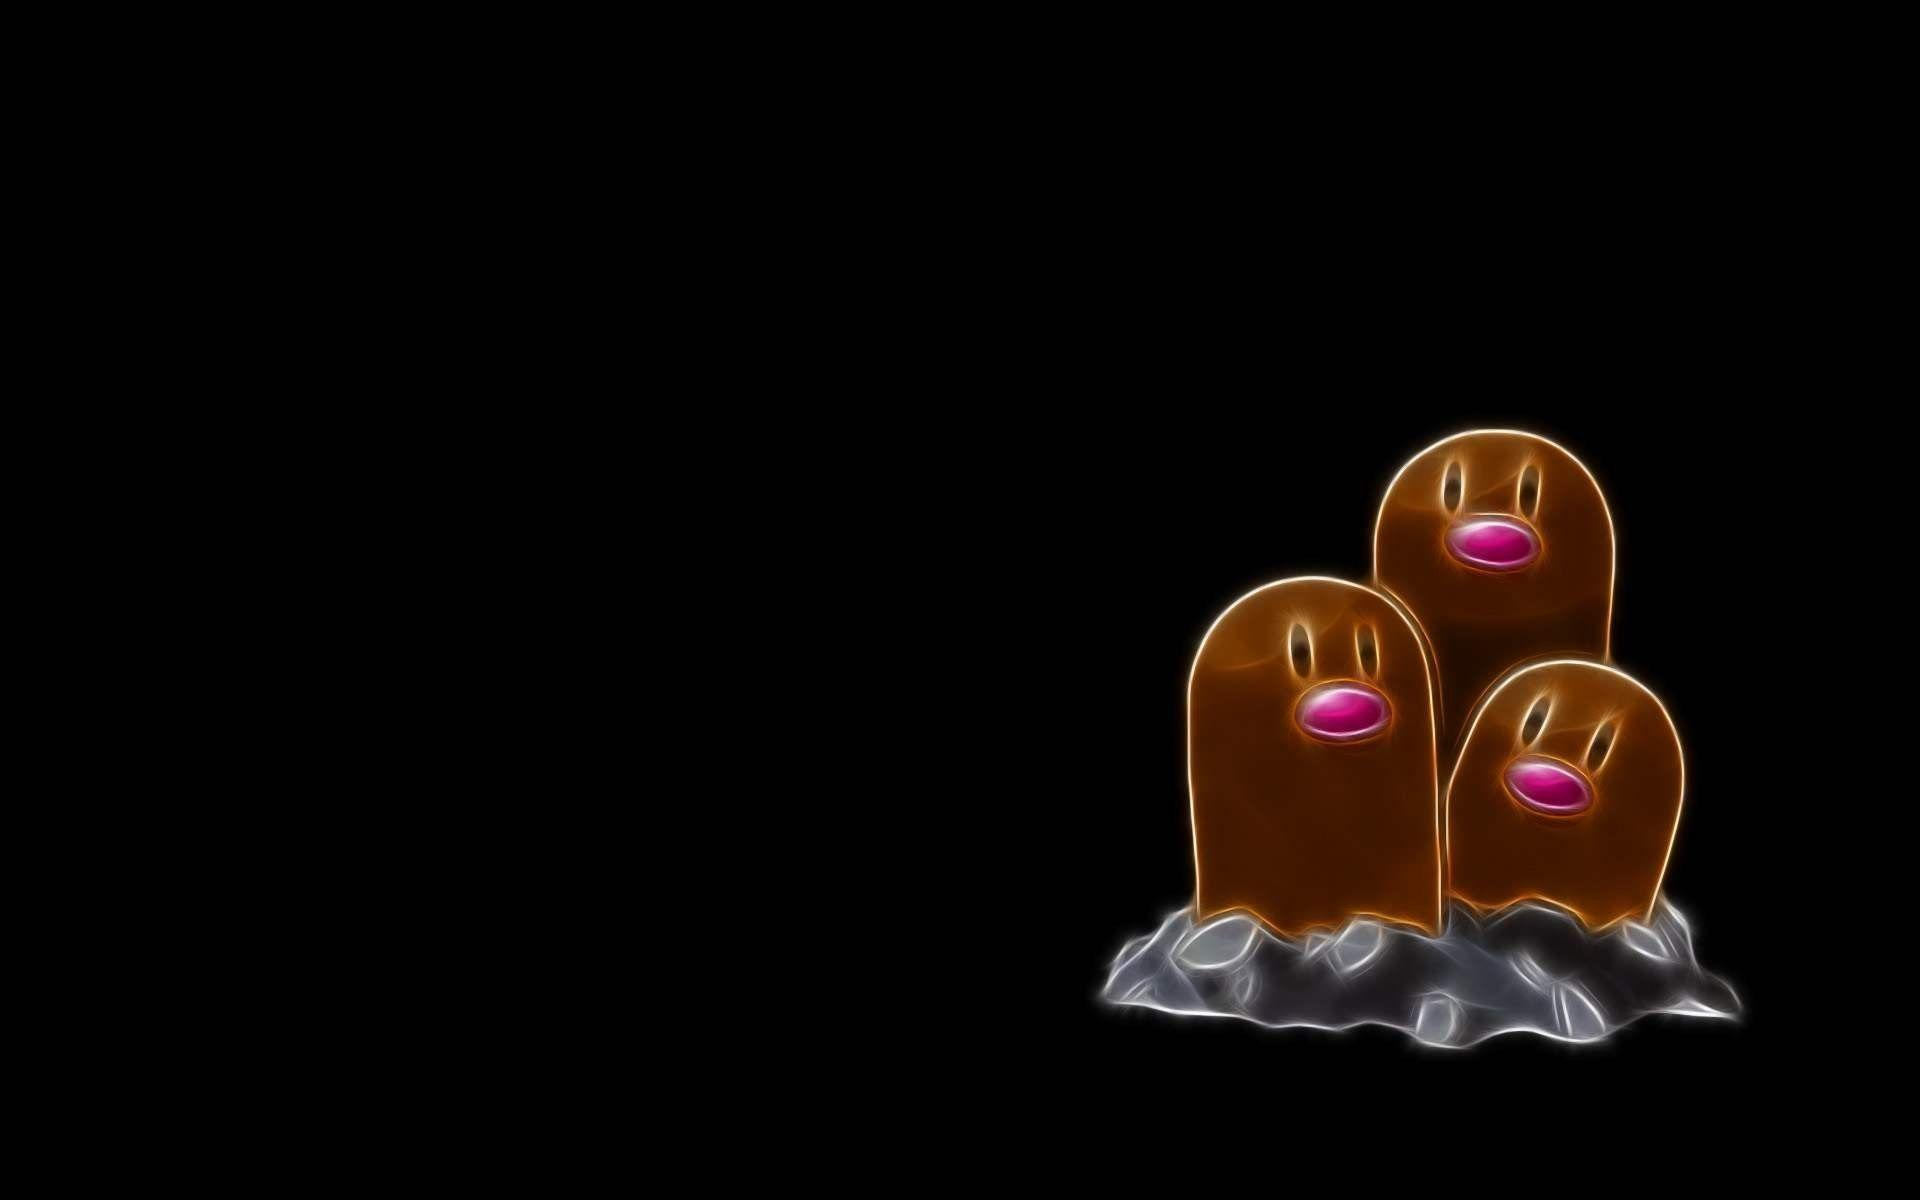 dugtrio wallpaper | sharovarka | Pinterest | Wallpaper